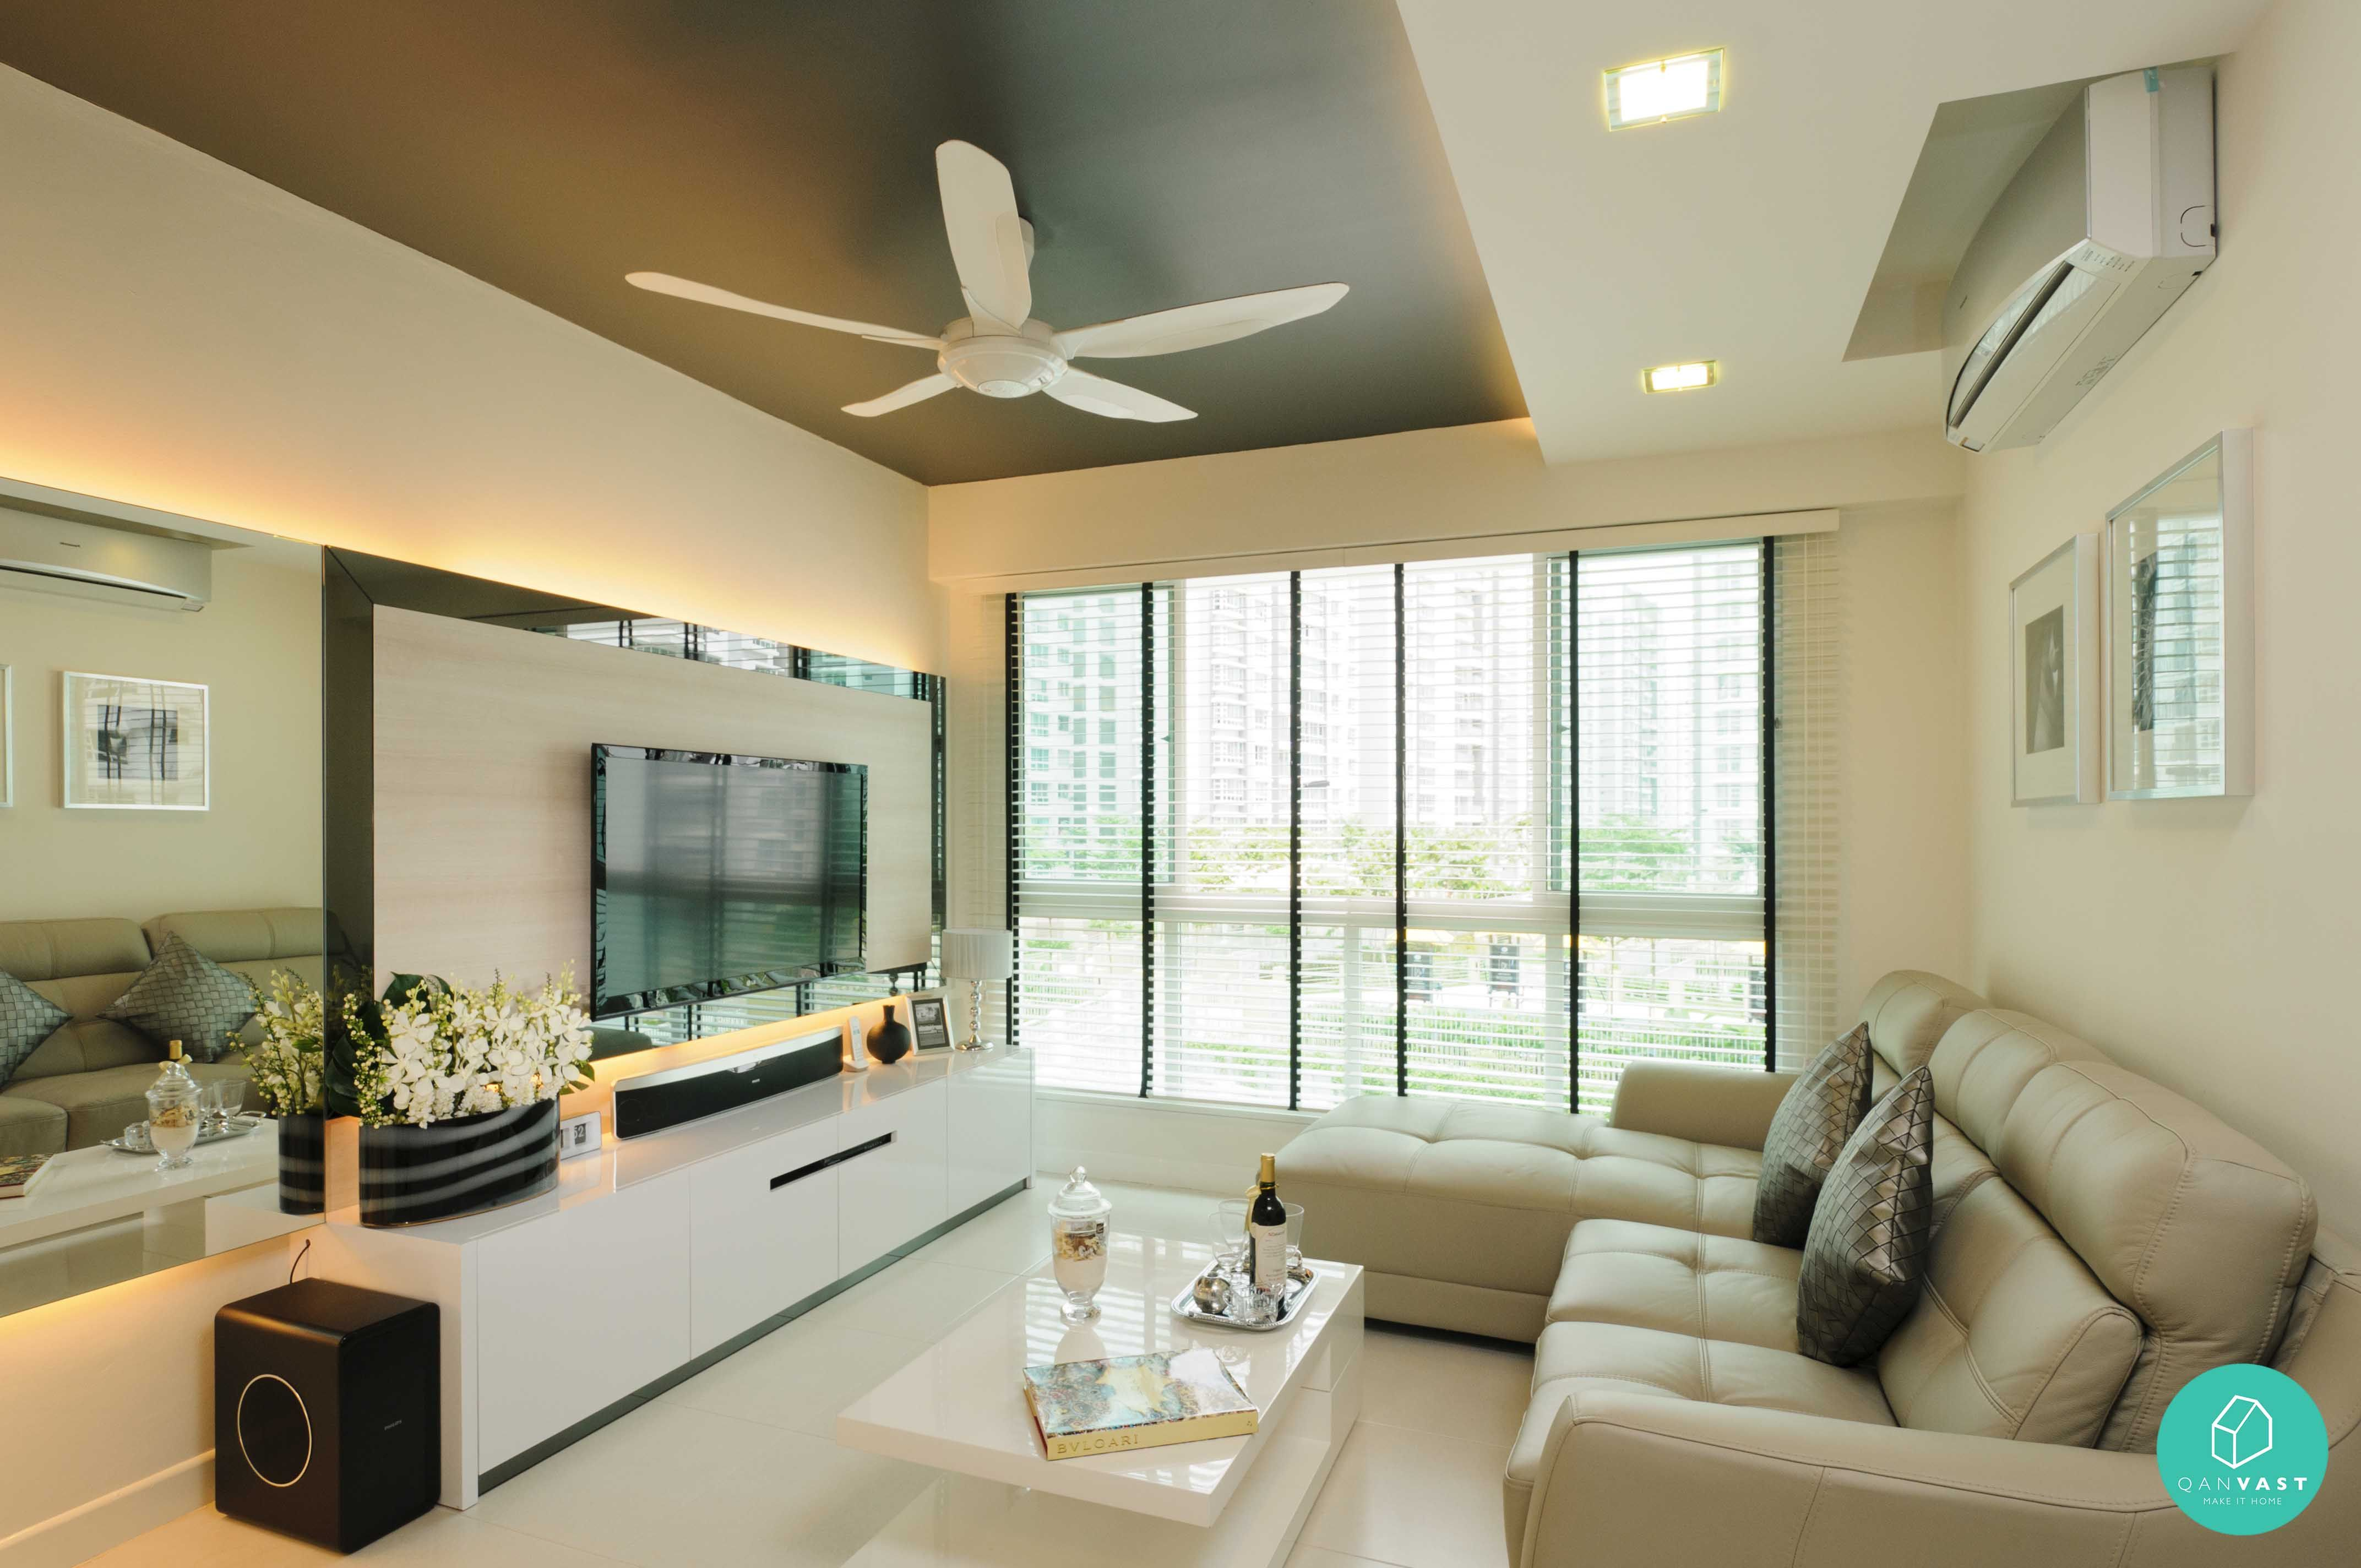 Your Dream Home For Under $25000  House Living Rooms And Room Classy Ceiling Design Ideas For Living Room Review